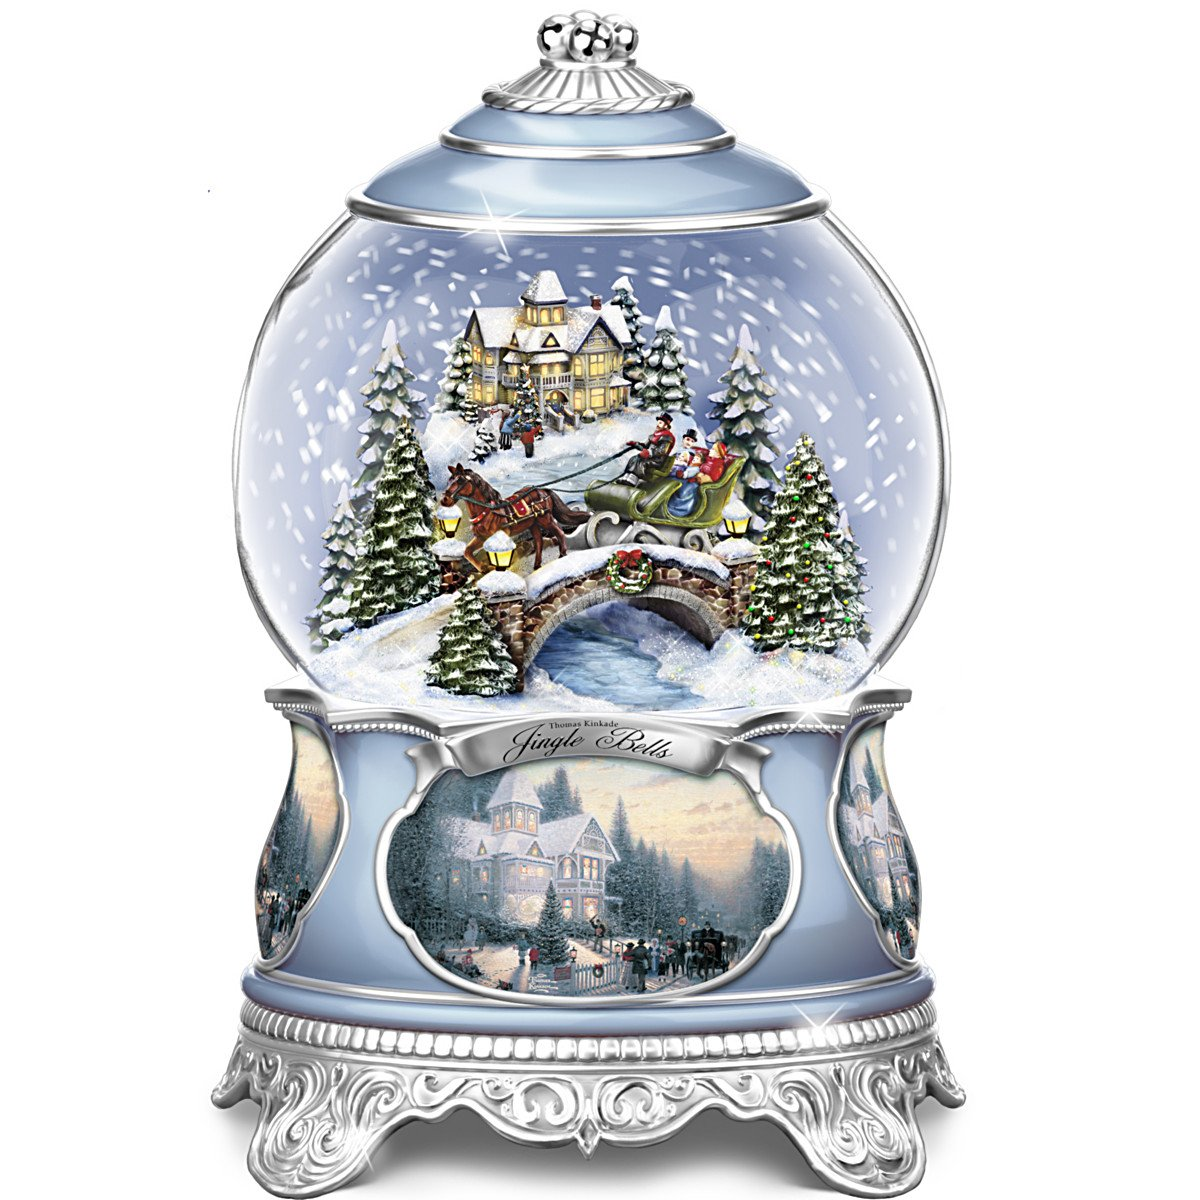 Bradford Exchange Thomas Kinkade Jingle Bells Christmas Musical Snowglobe by The